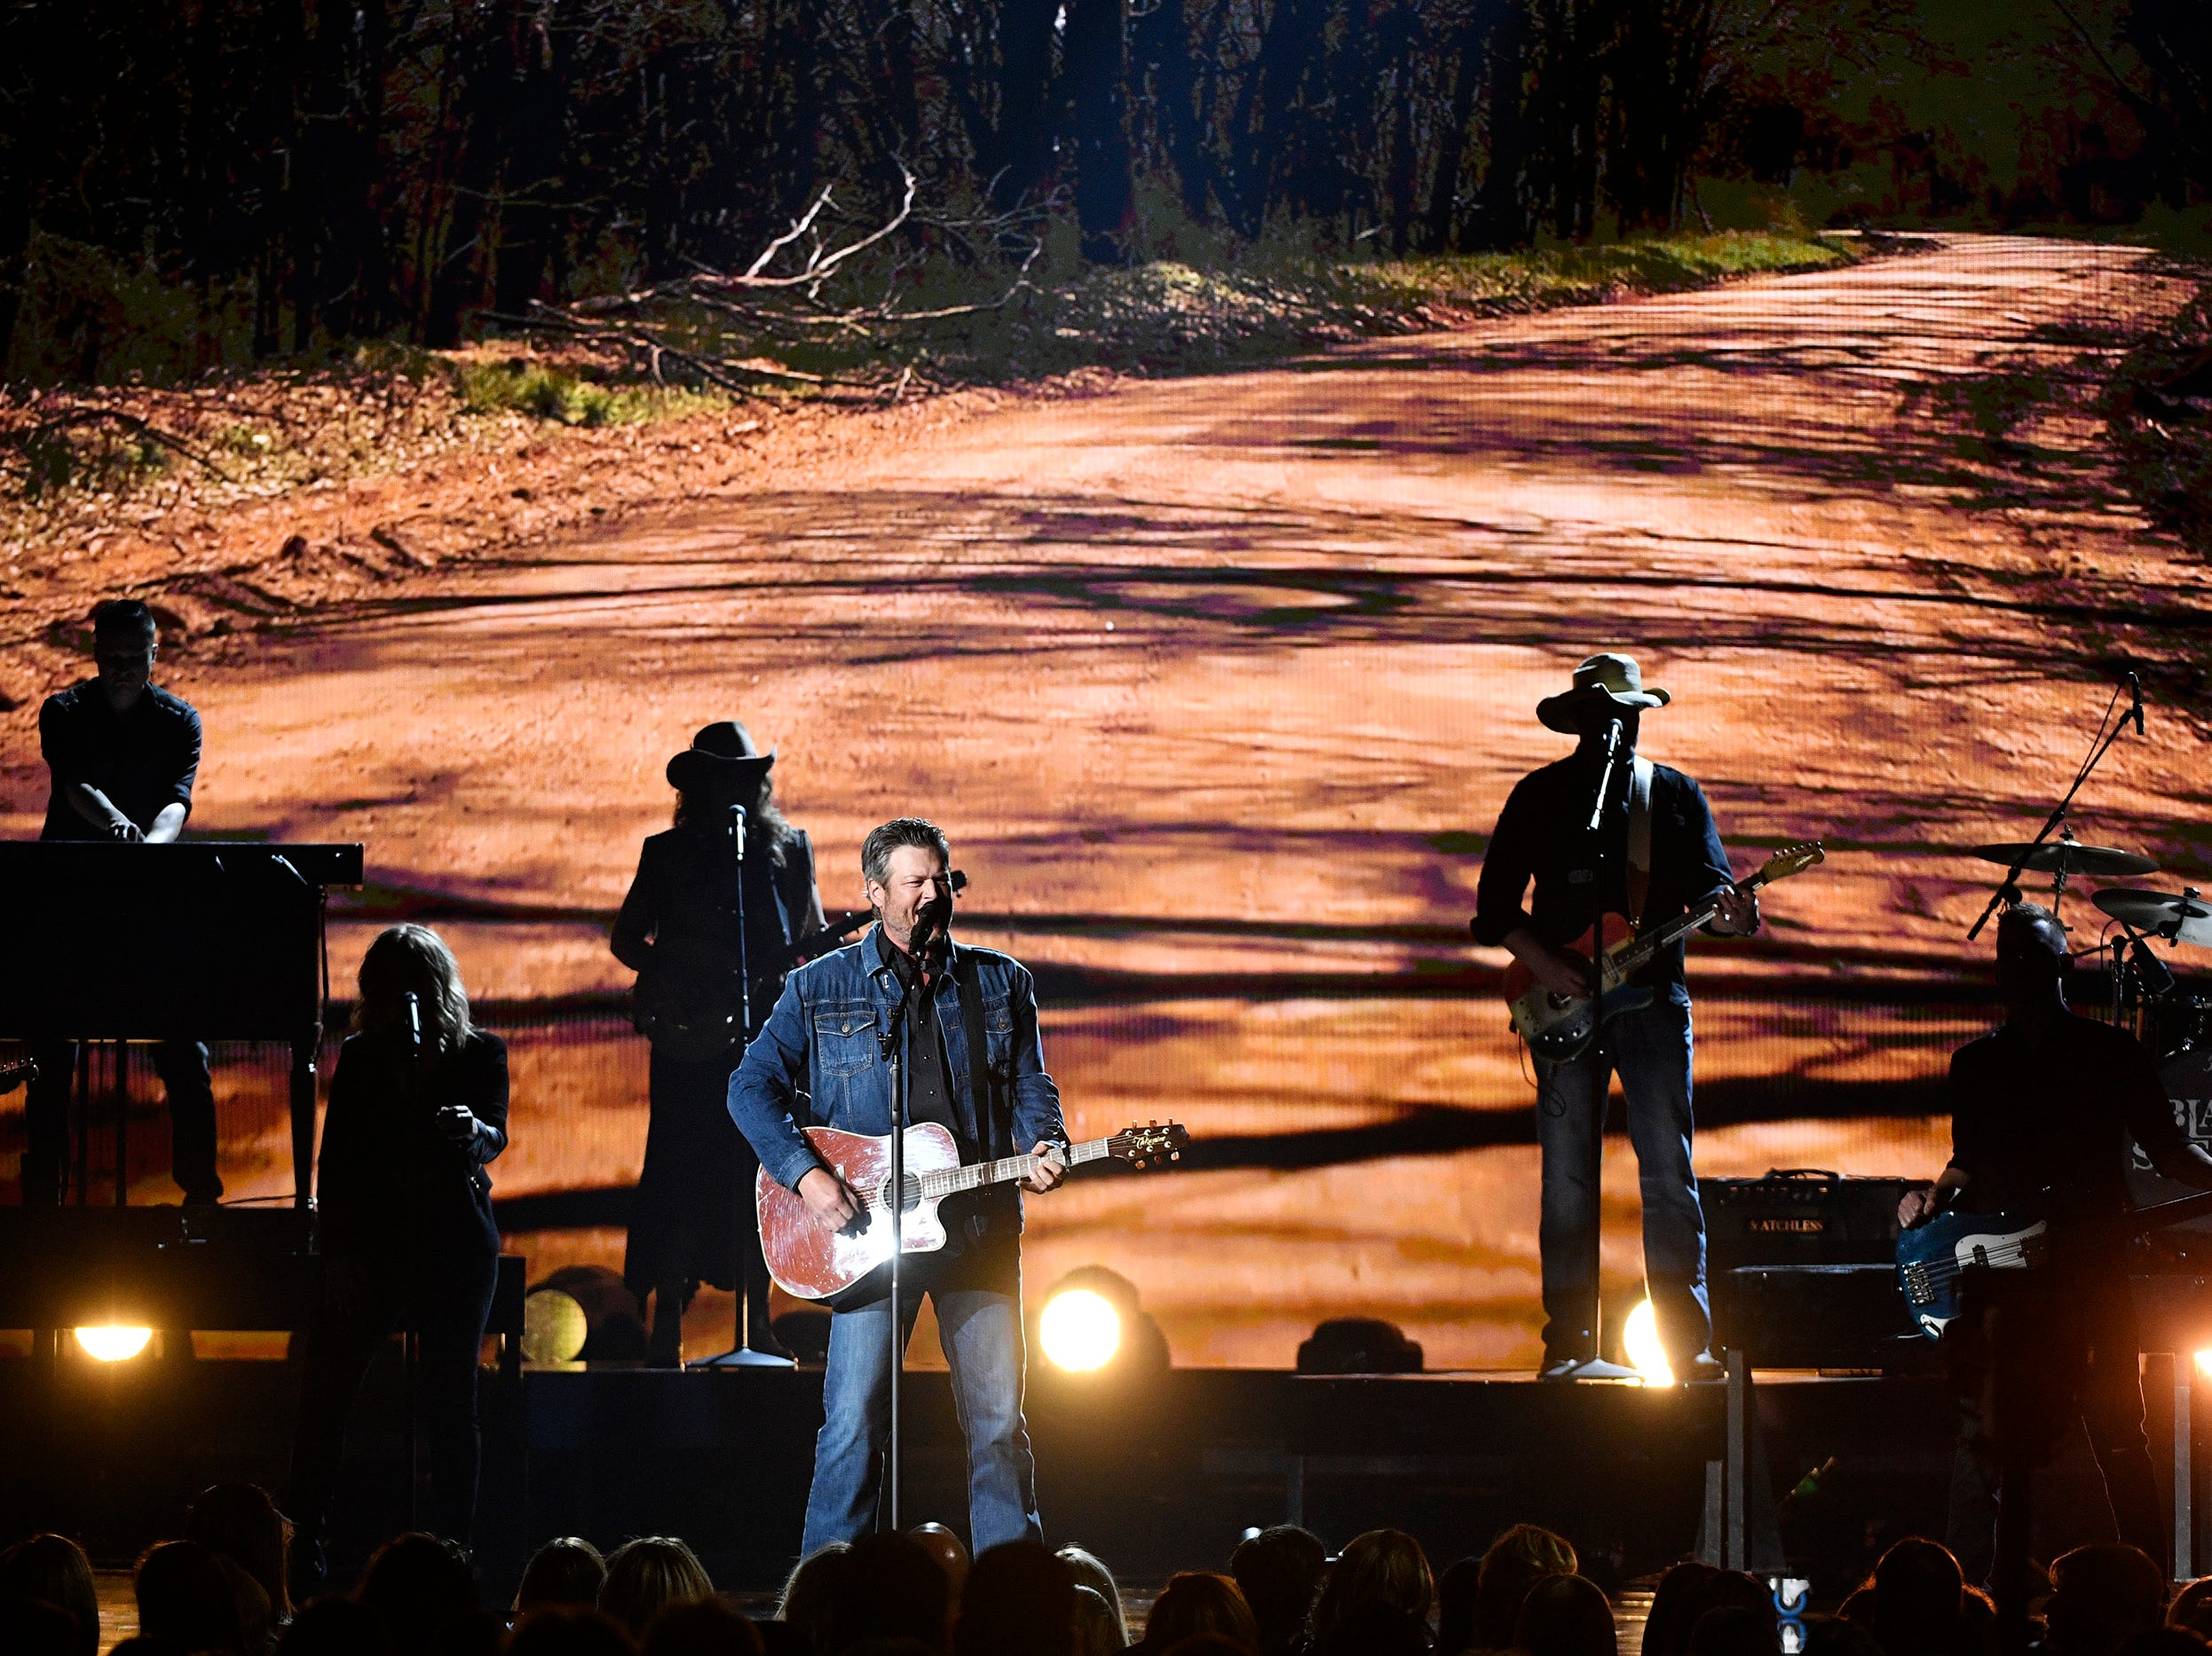 Blake Shelton performs during the 54TH Academy of Country Music Awards Sunday, April 7, 2019, in Las Vegas, Nev.